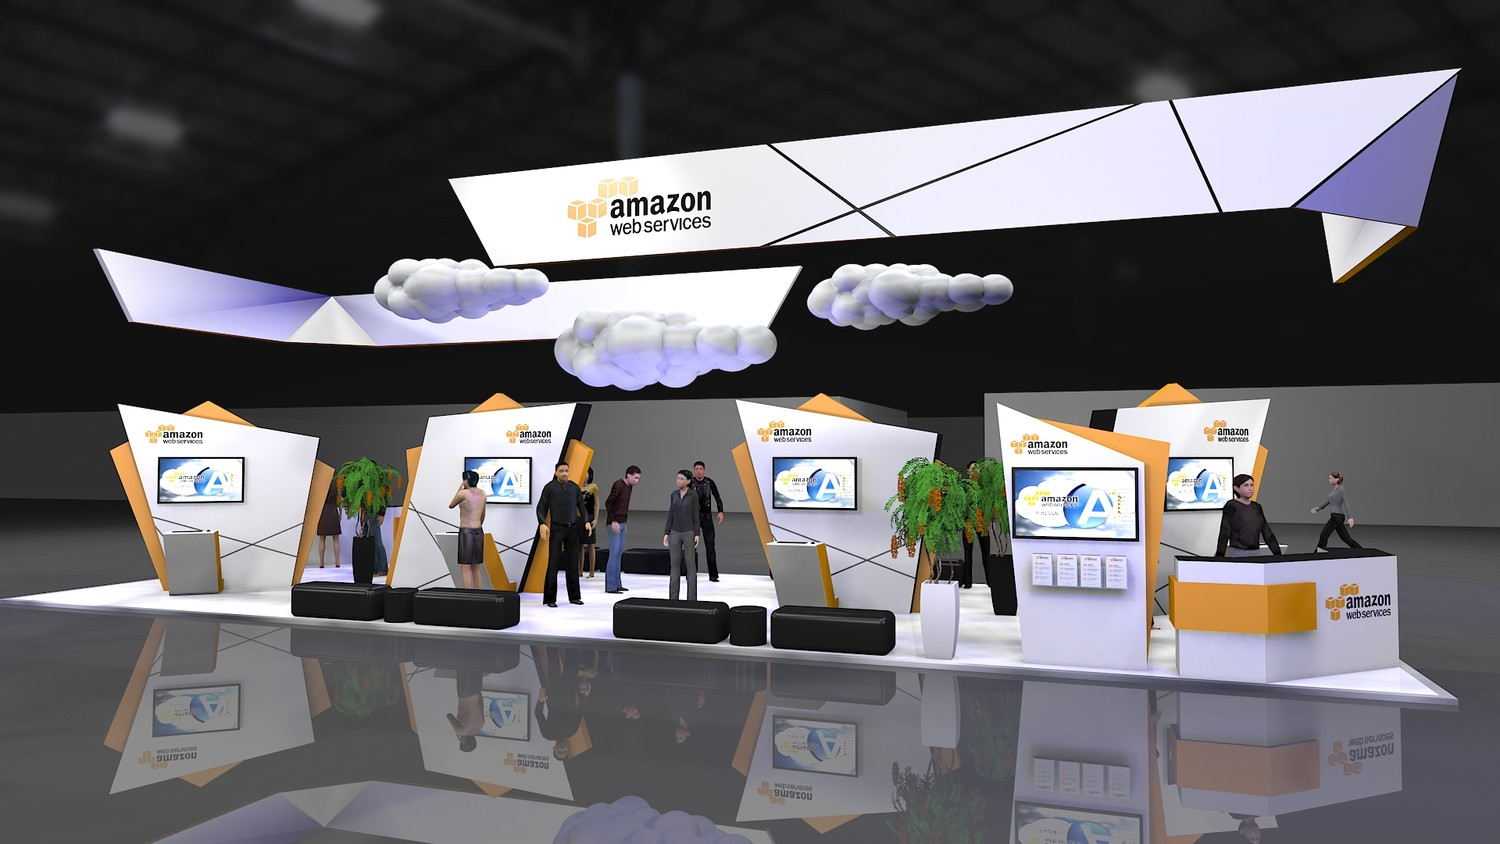 Exhibition Booth Animation : D walkthrough animation for exhibition booths by a